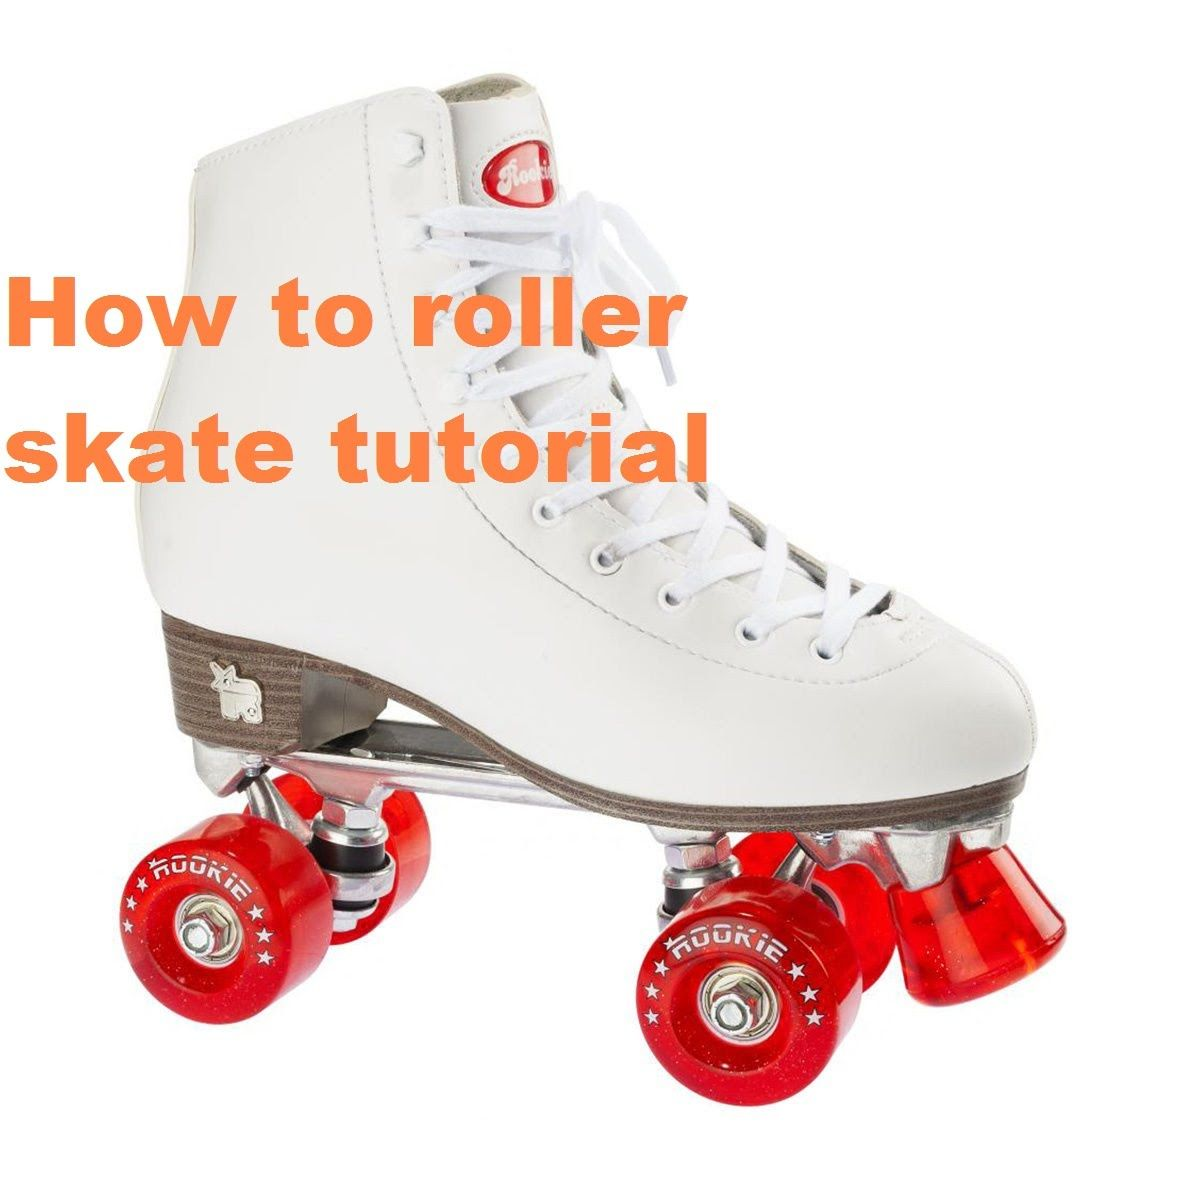 How To Roller Skate For The First Time How To Roller Skate Tutorial Roller Skating First Time Camping Roller